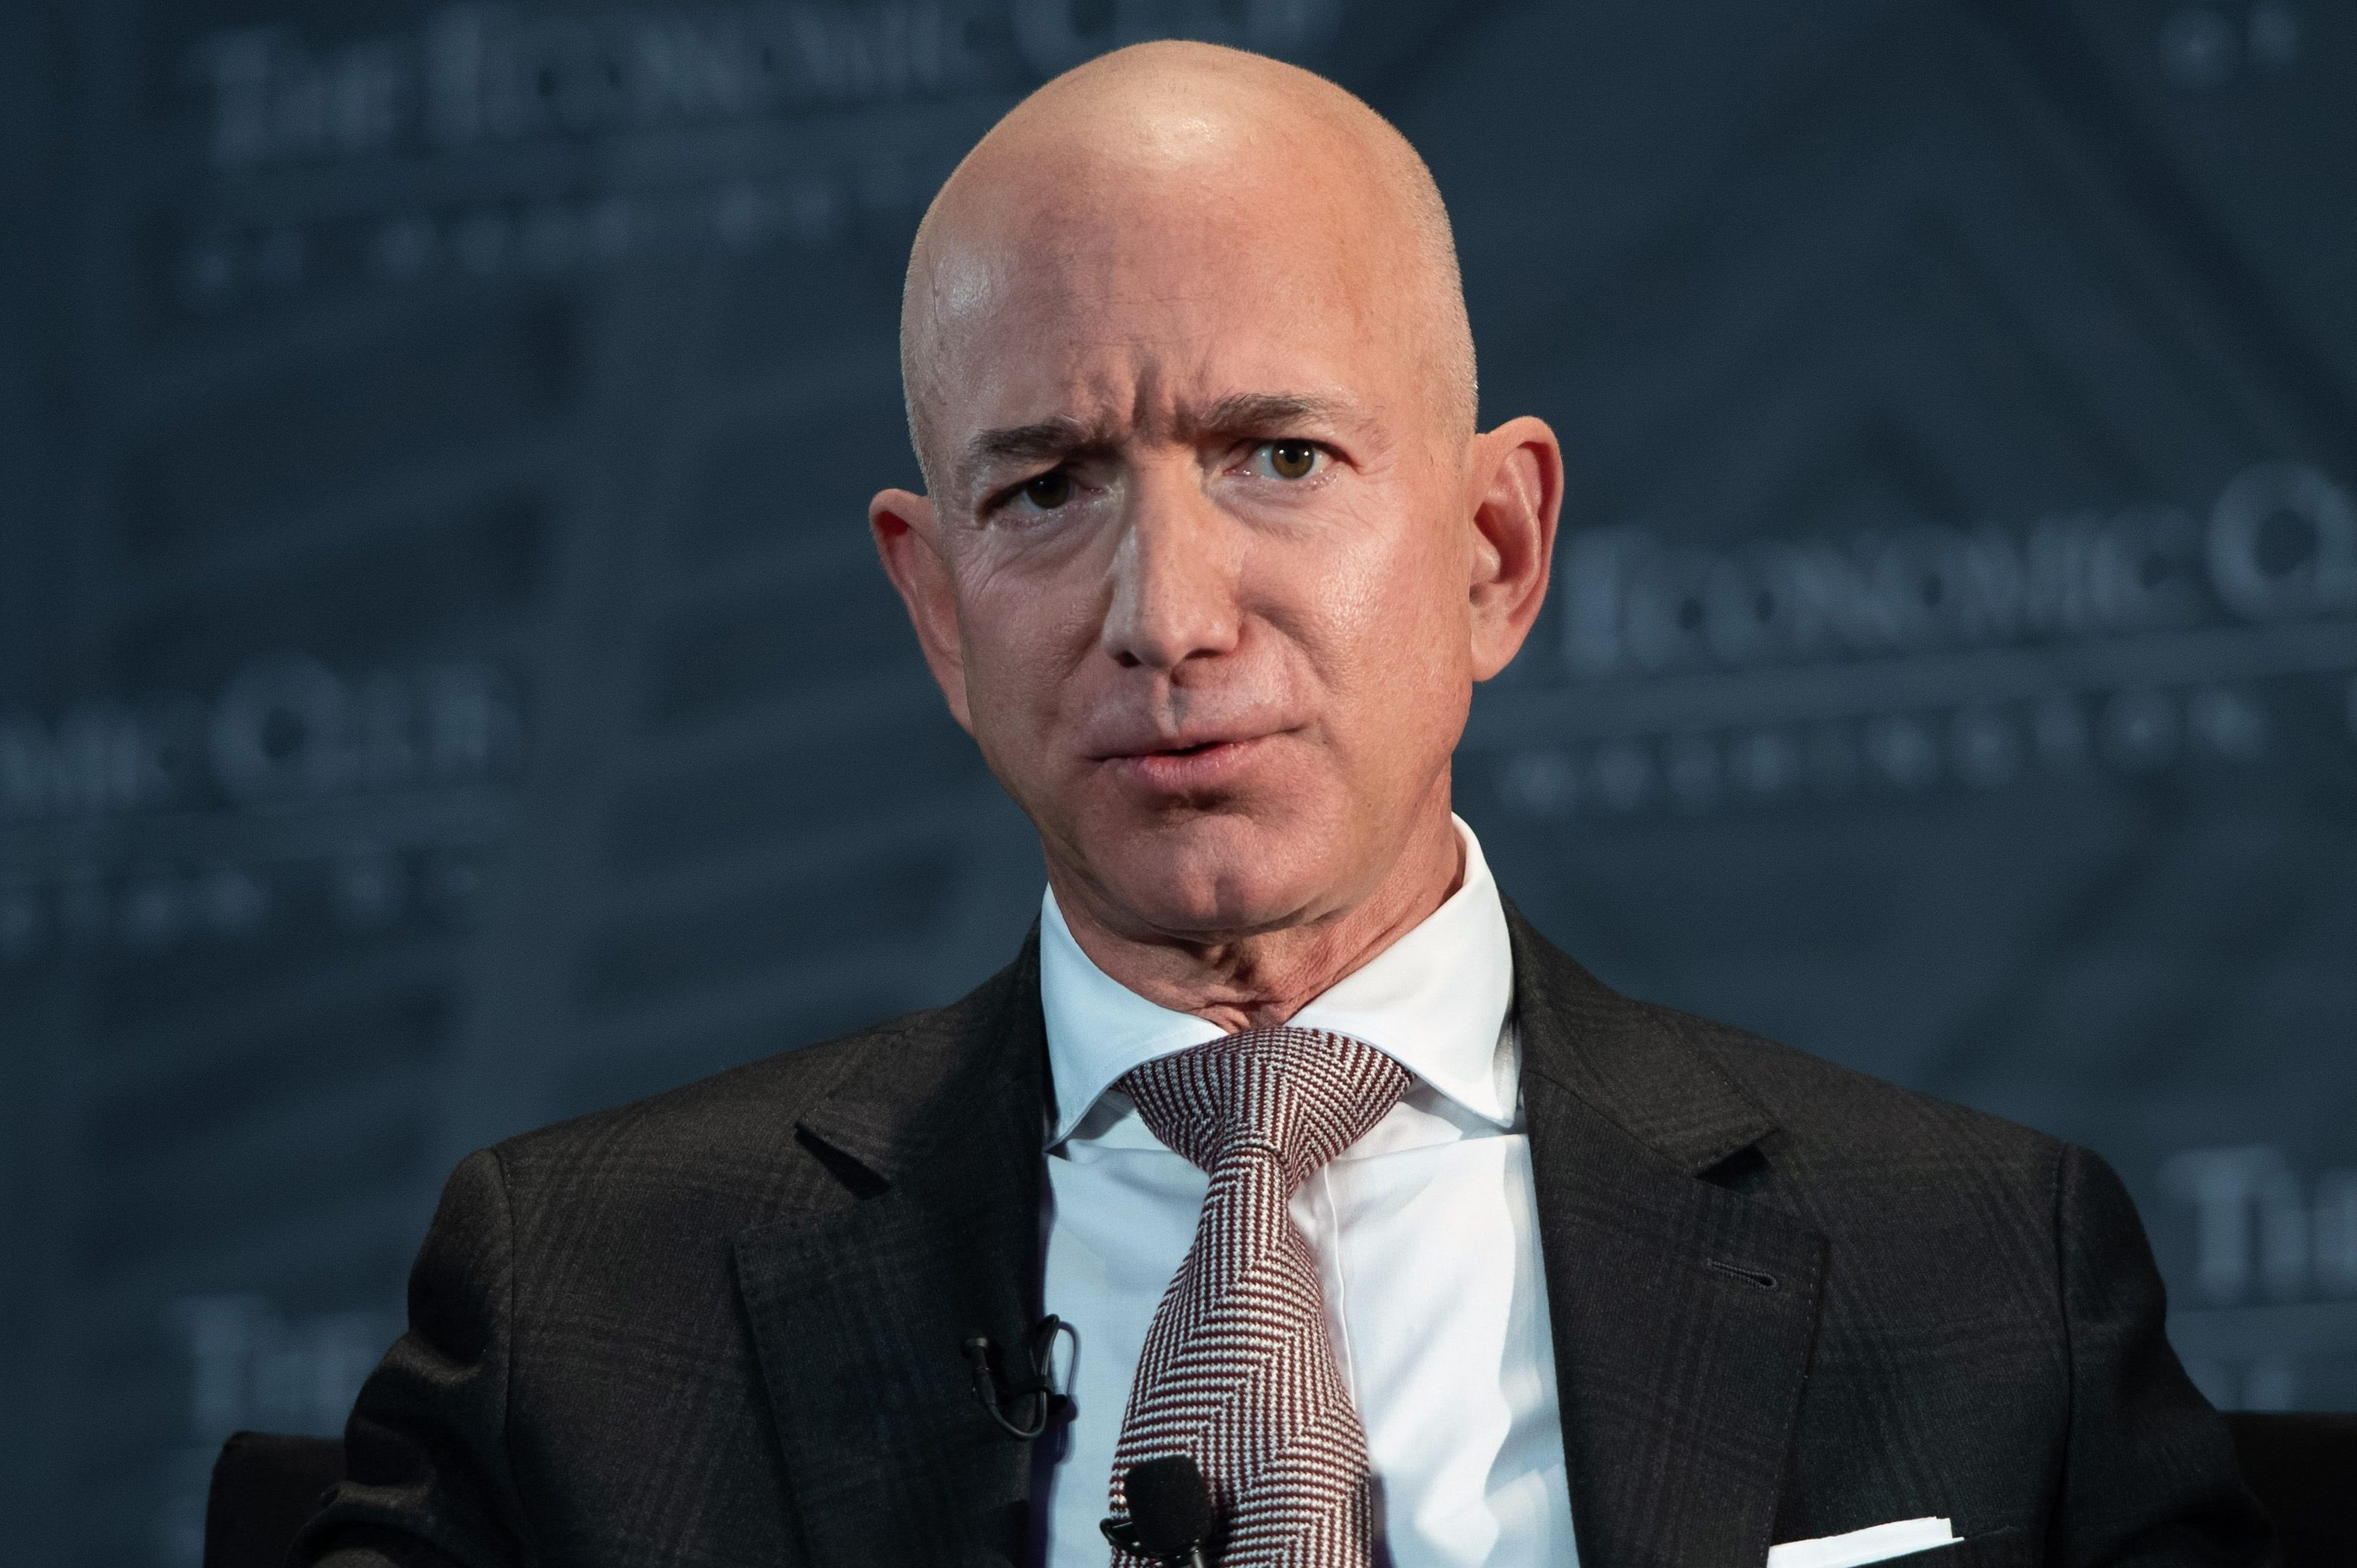 jeff bezos agrees to testify before congress on